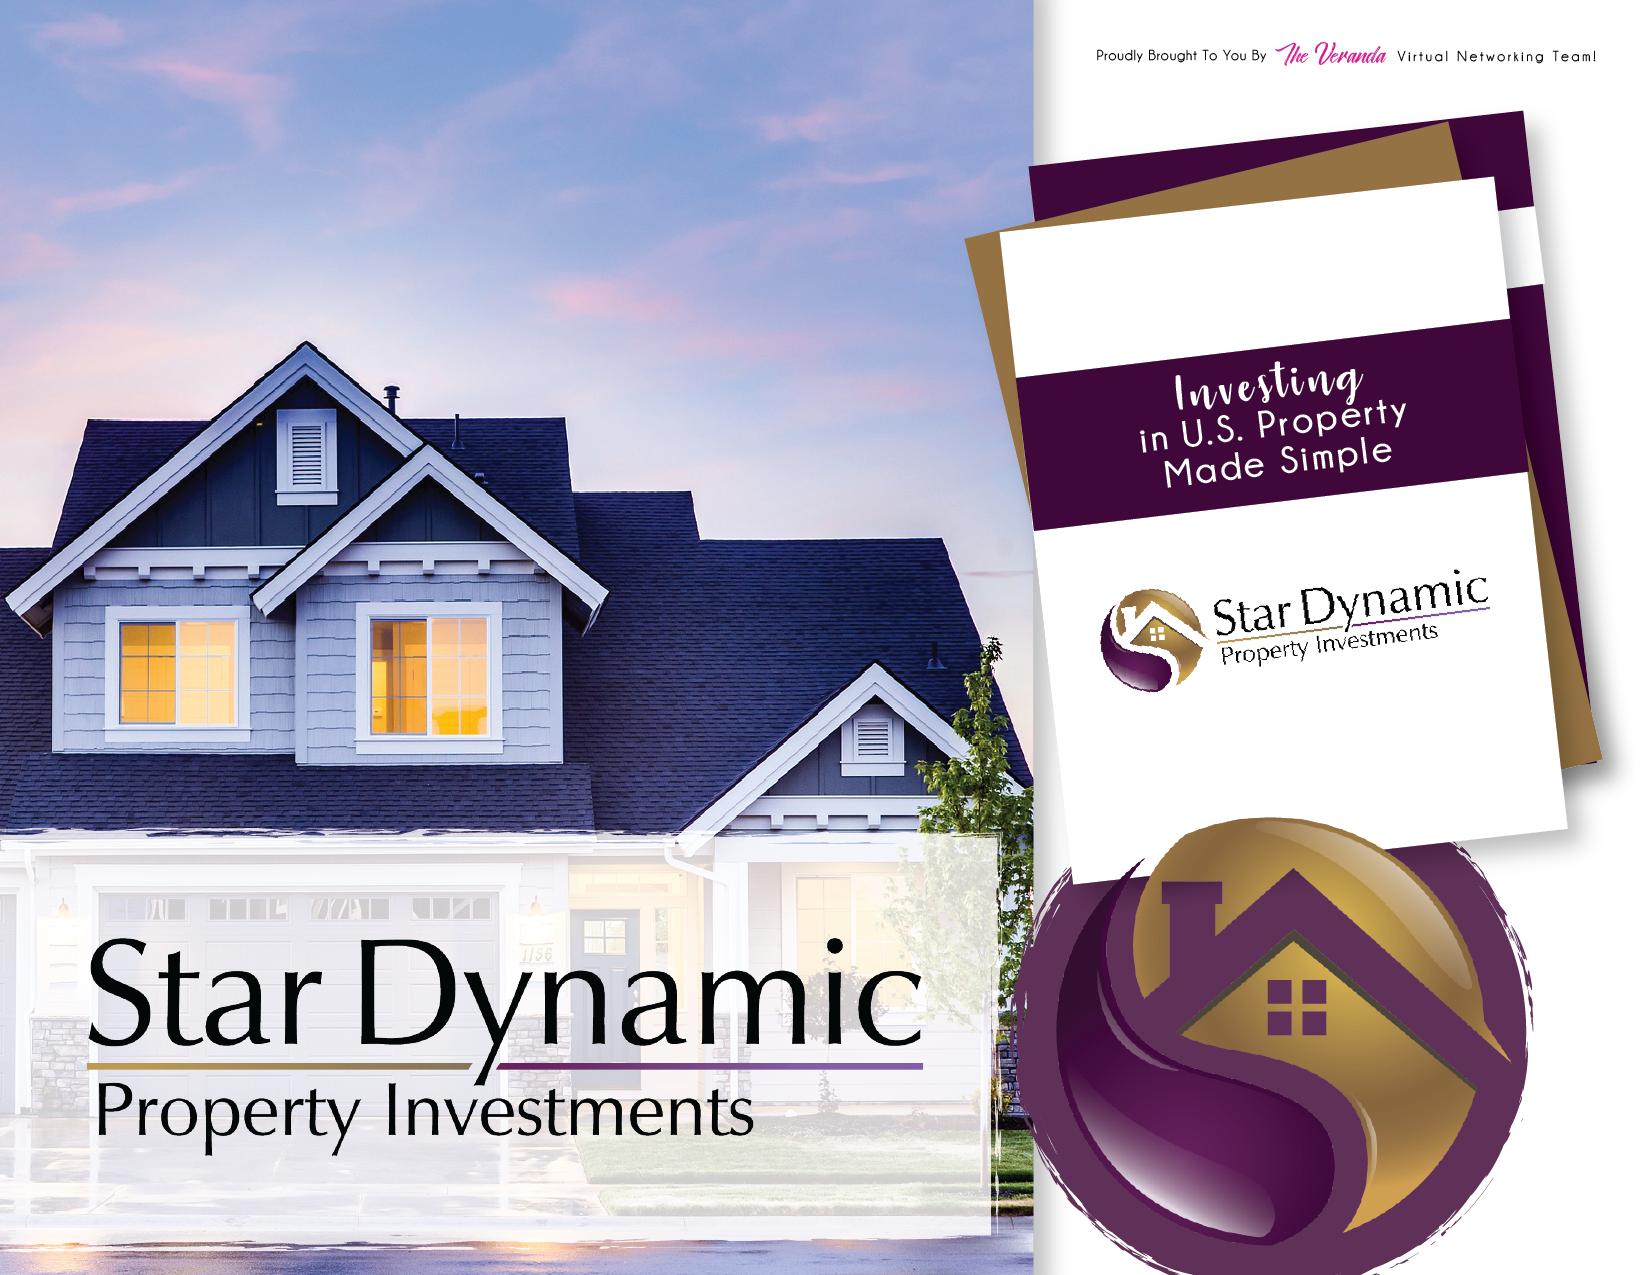 Star Dynamic Property Investments